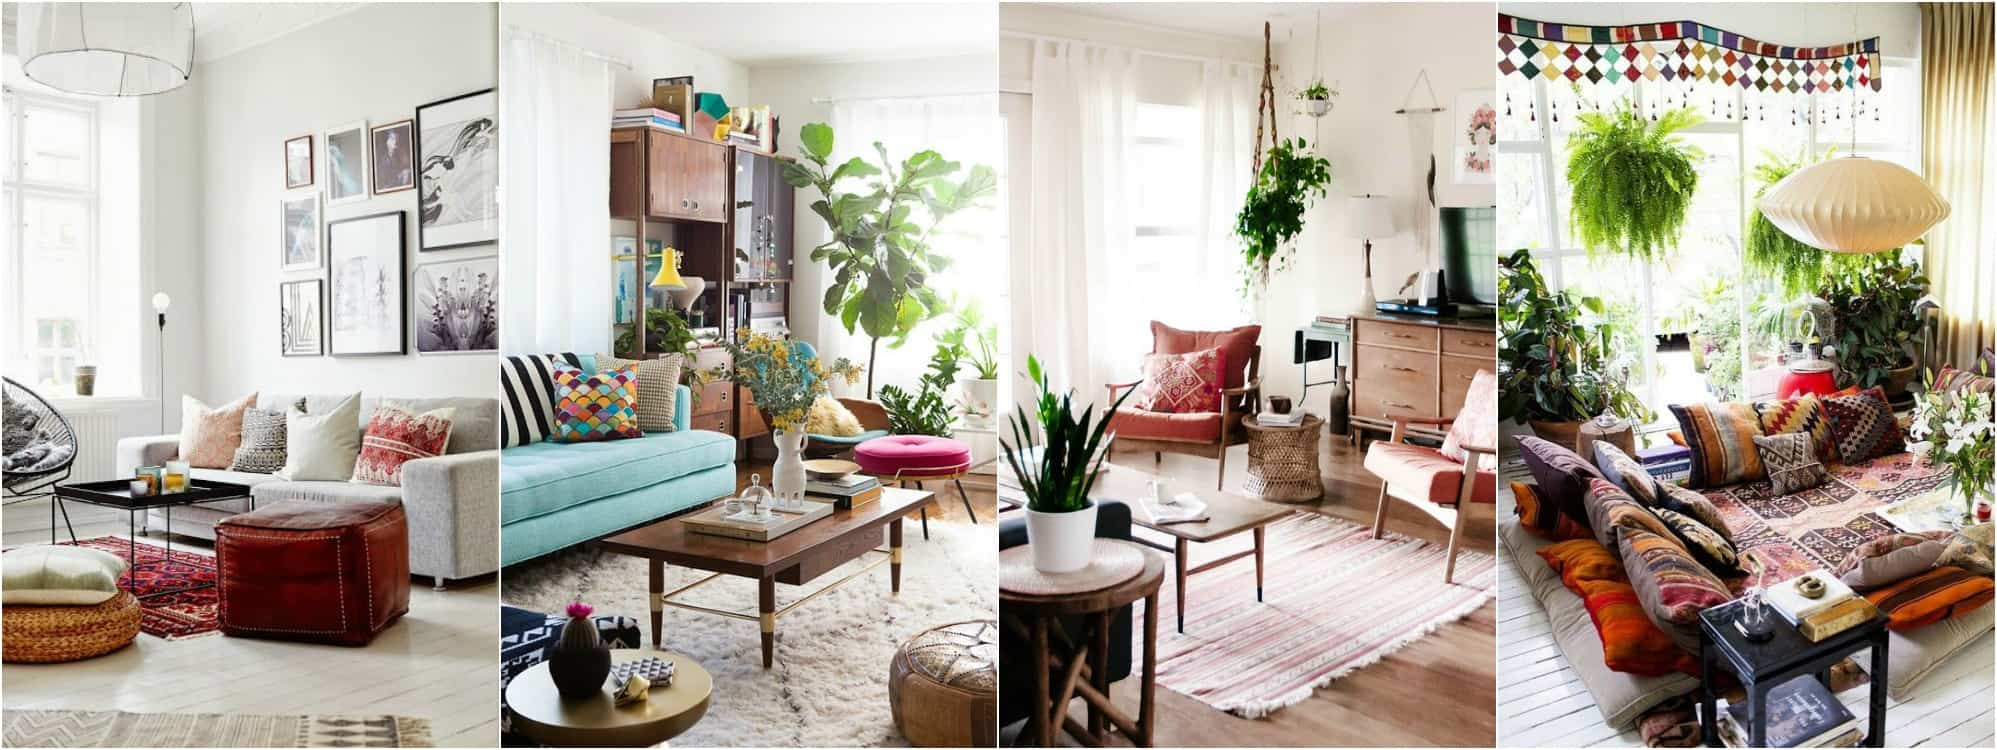 Boho chic living room plans one room challenge place for Bohemian chic living room makeover